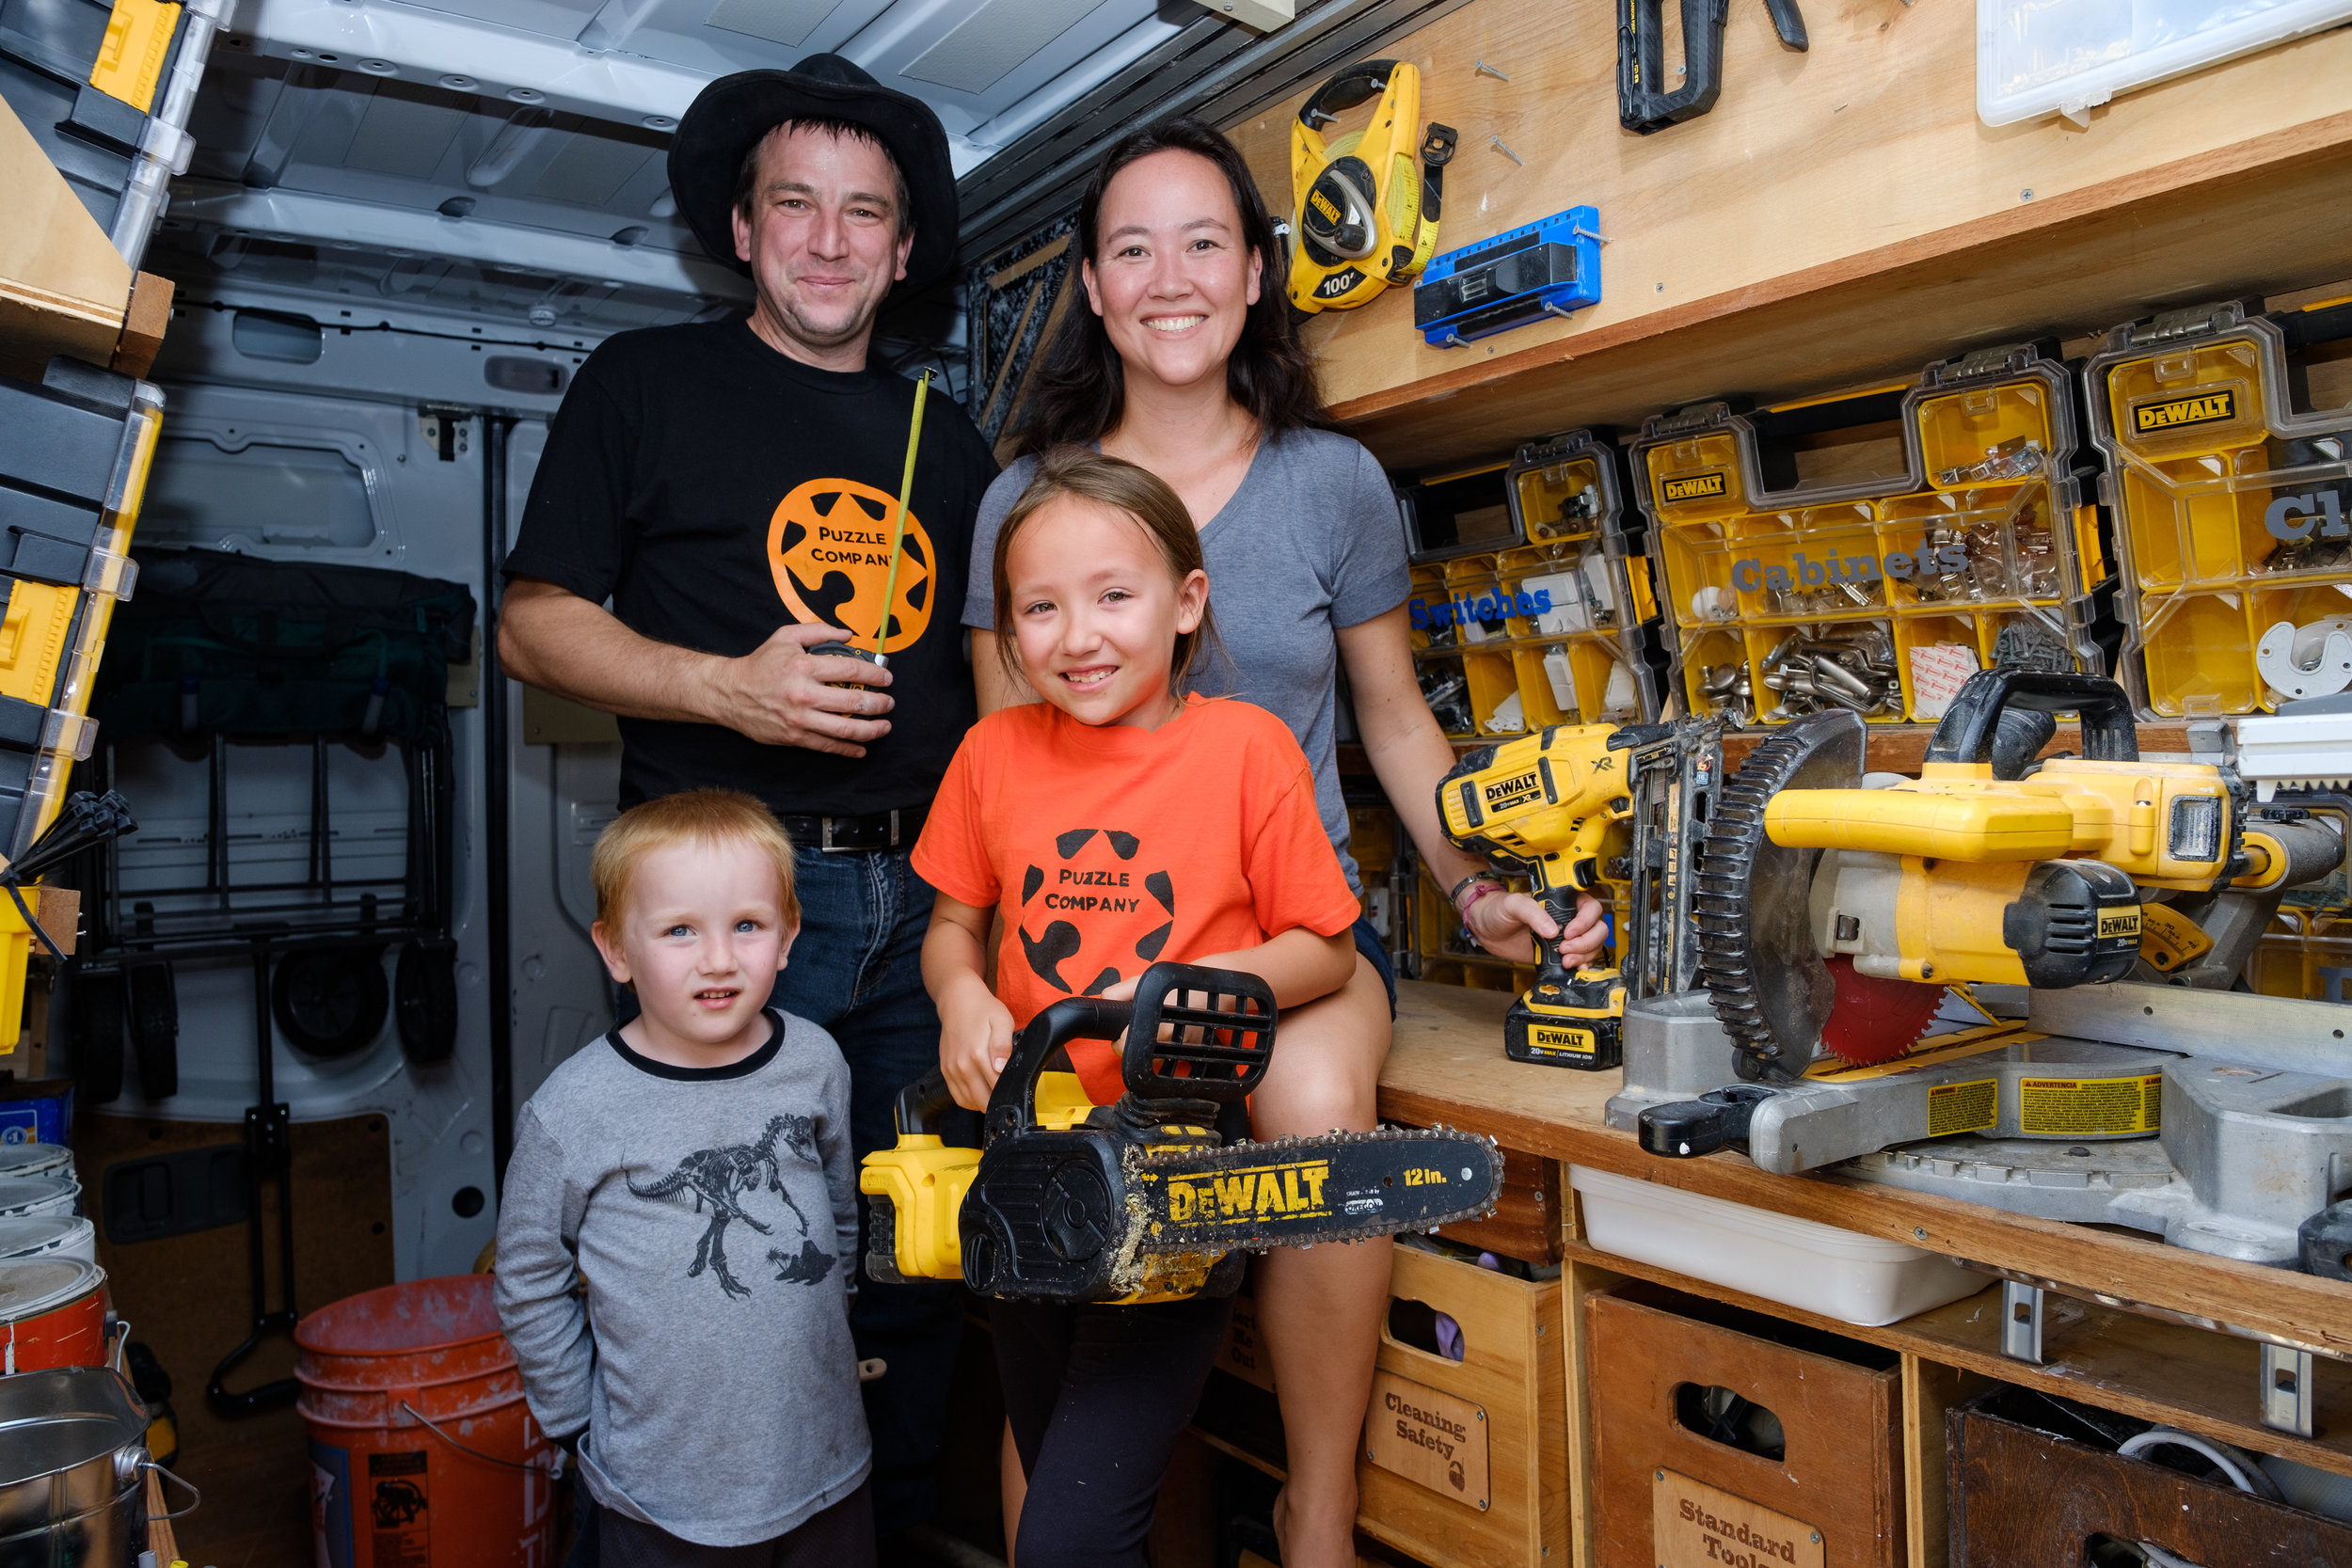 The Knight Family In a Mobil Workshop